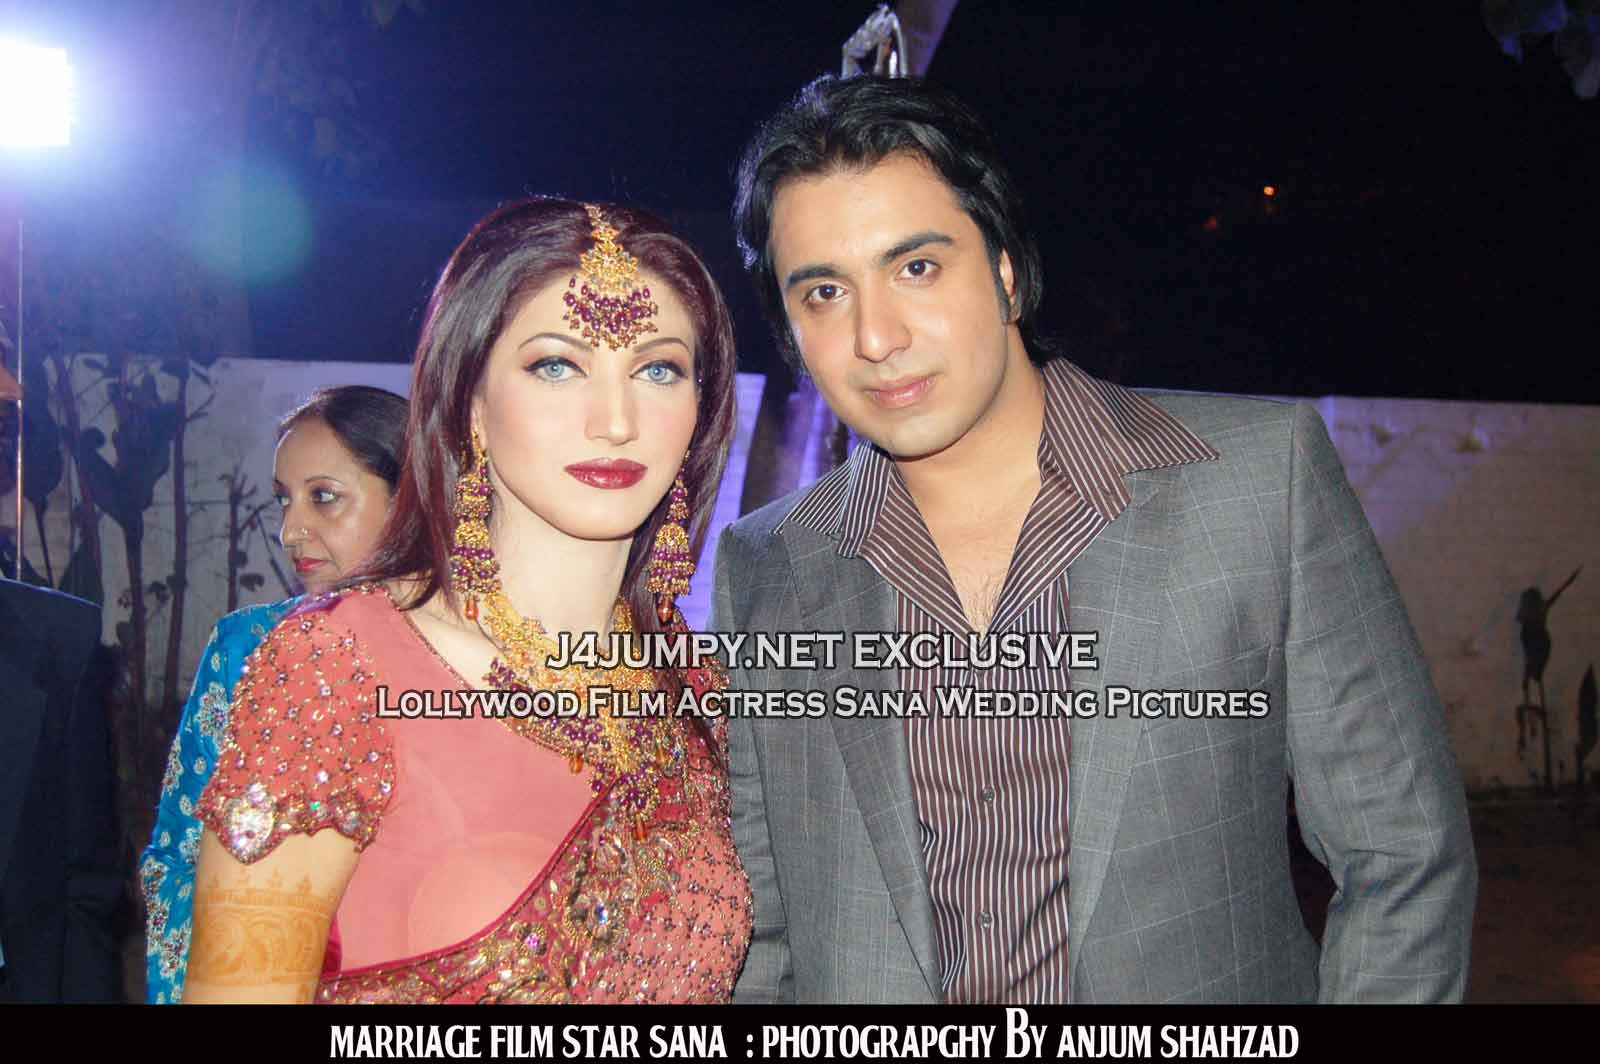 Pakistan Fashion Mag: Actress Weding